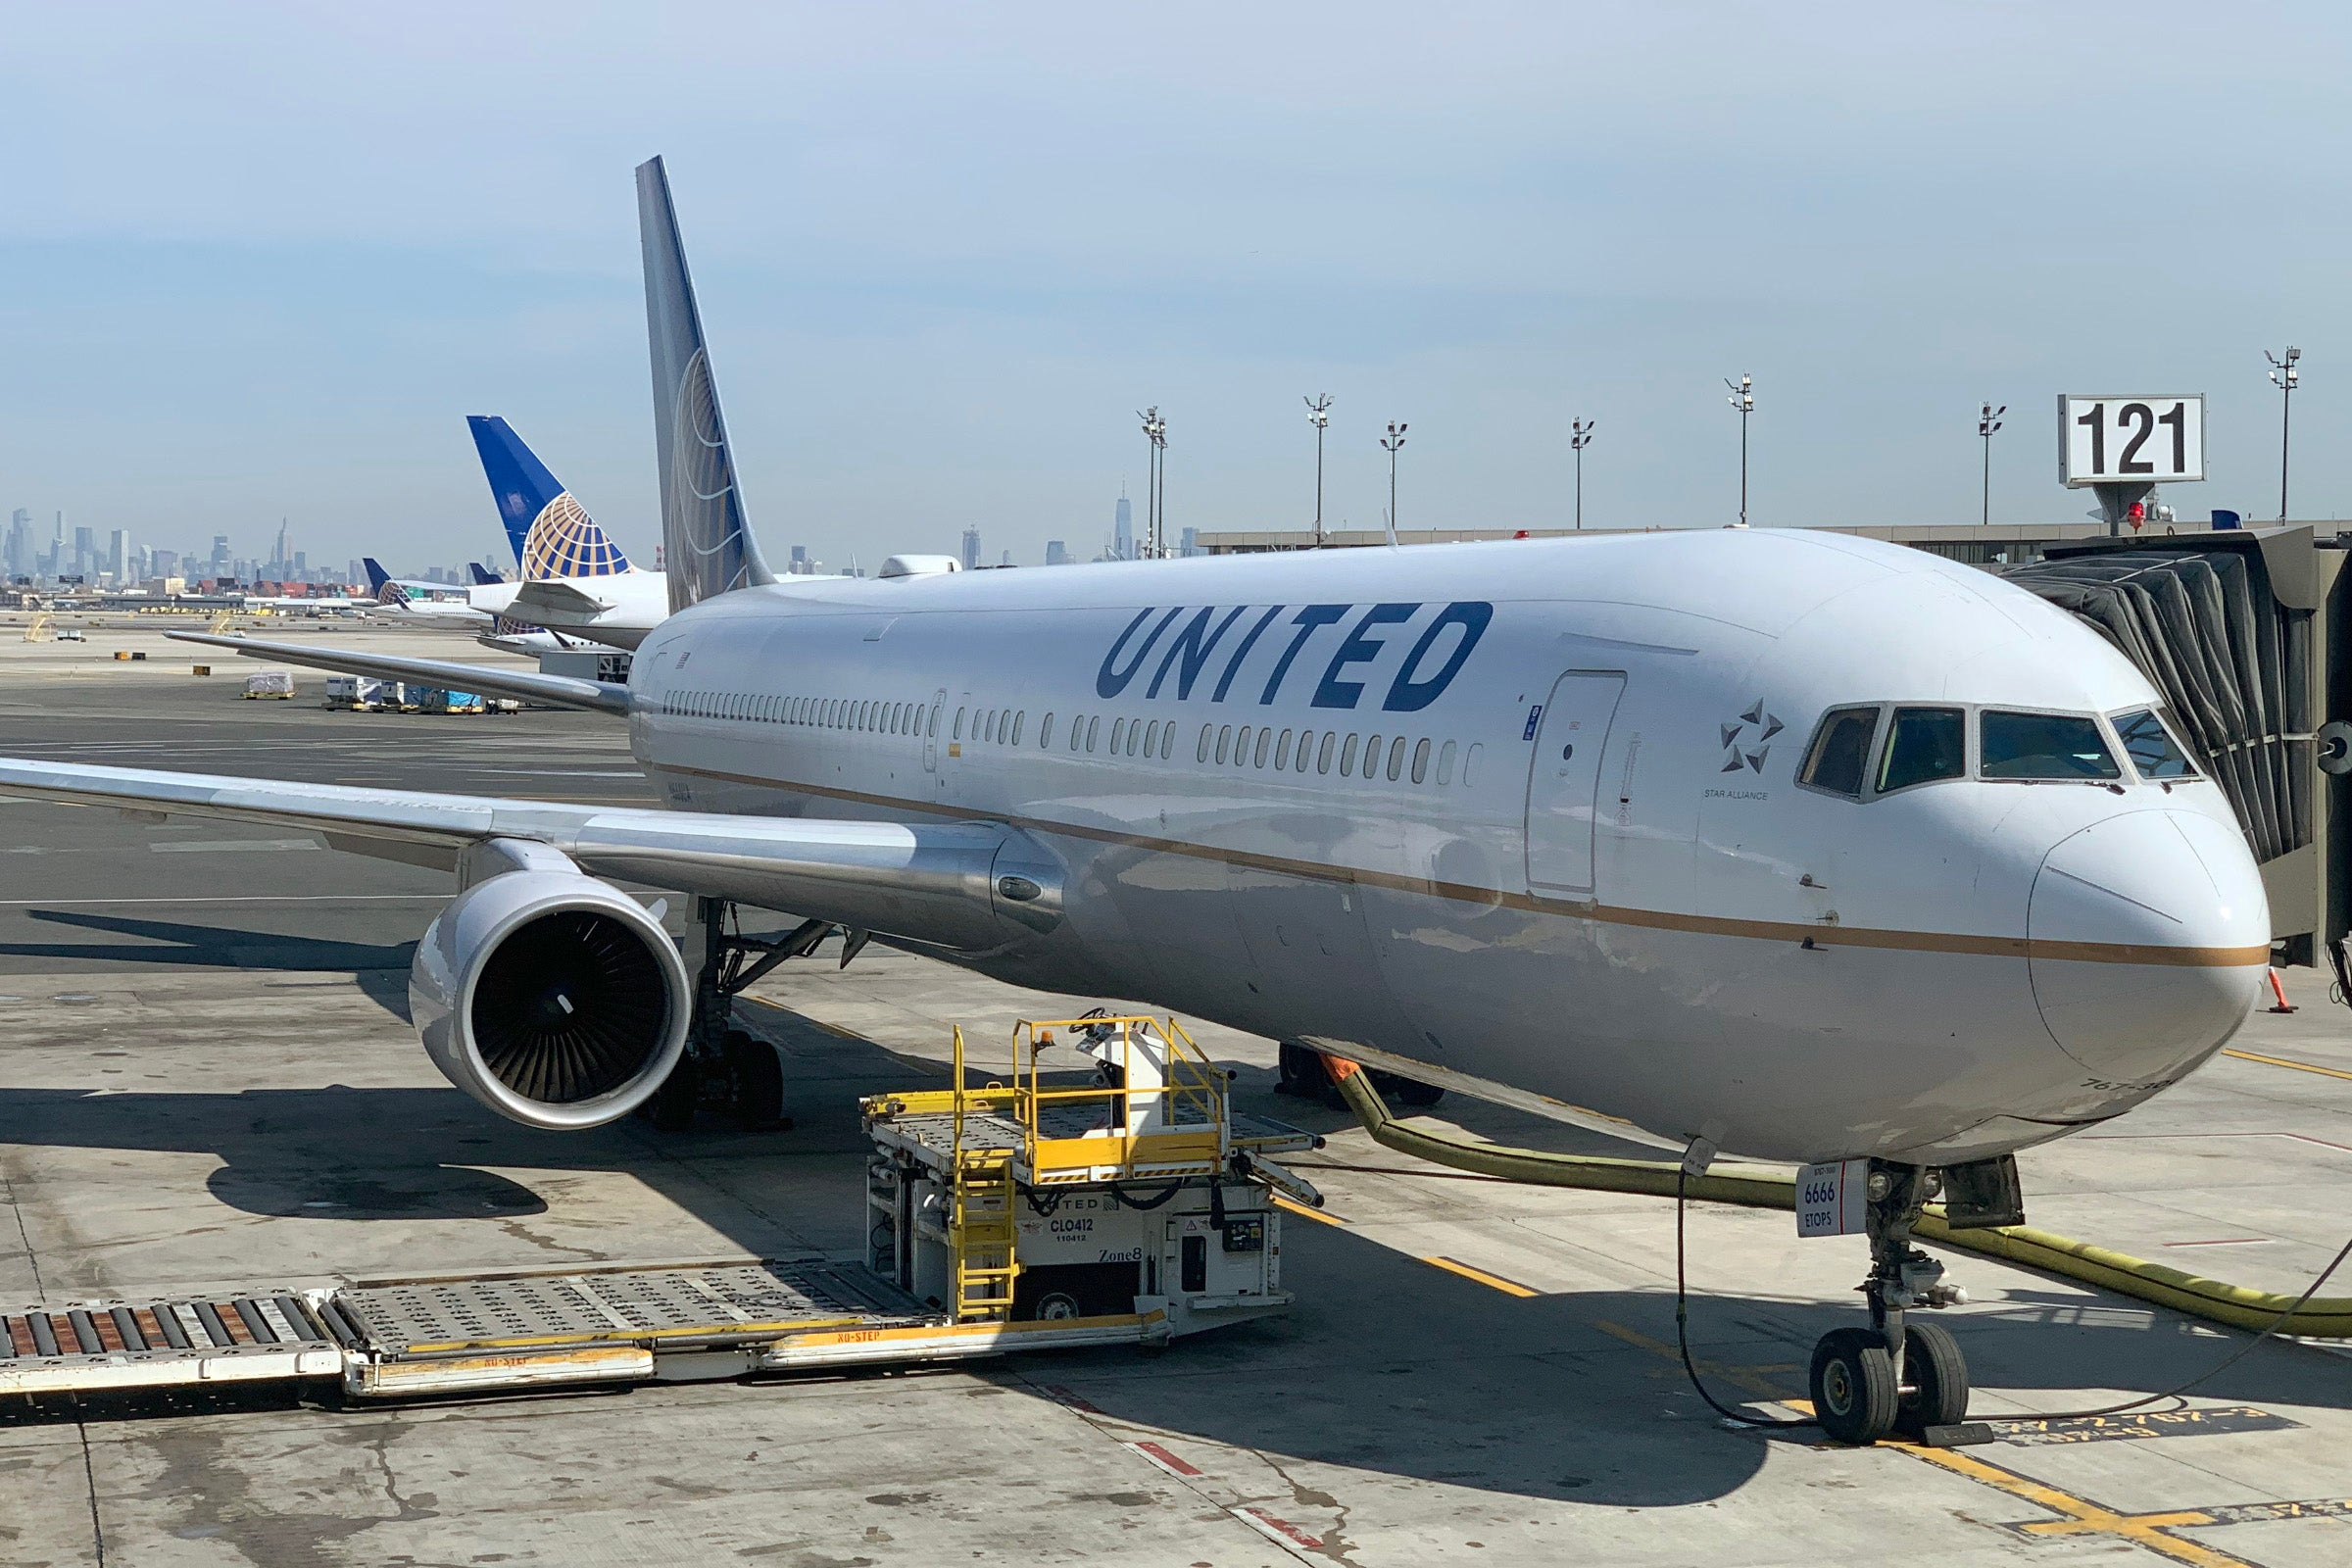 United Airlines flight credits: Everything you need to know